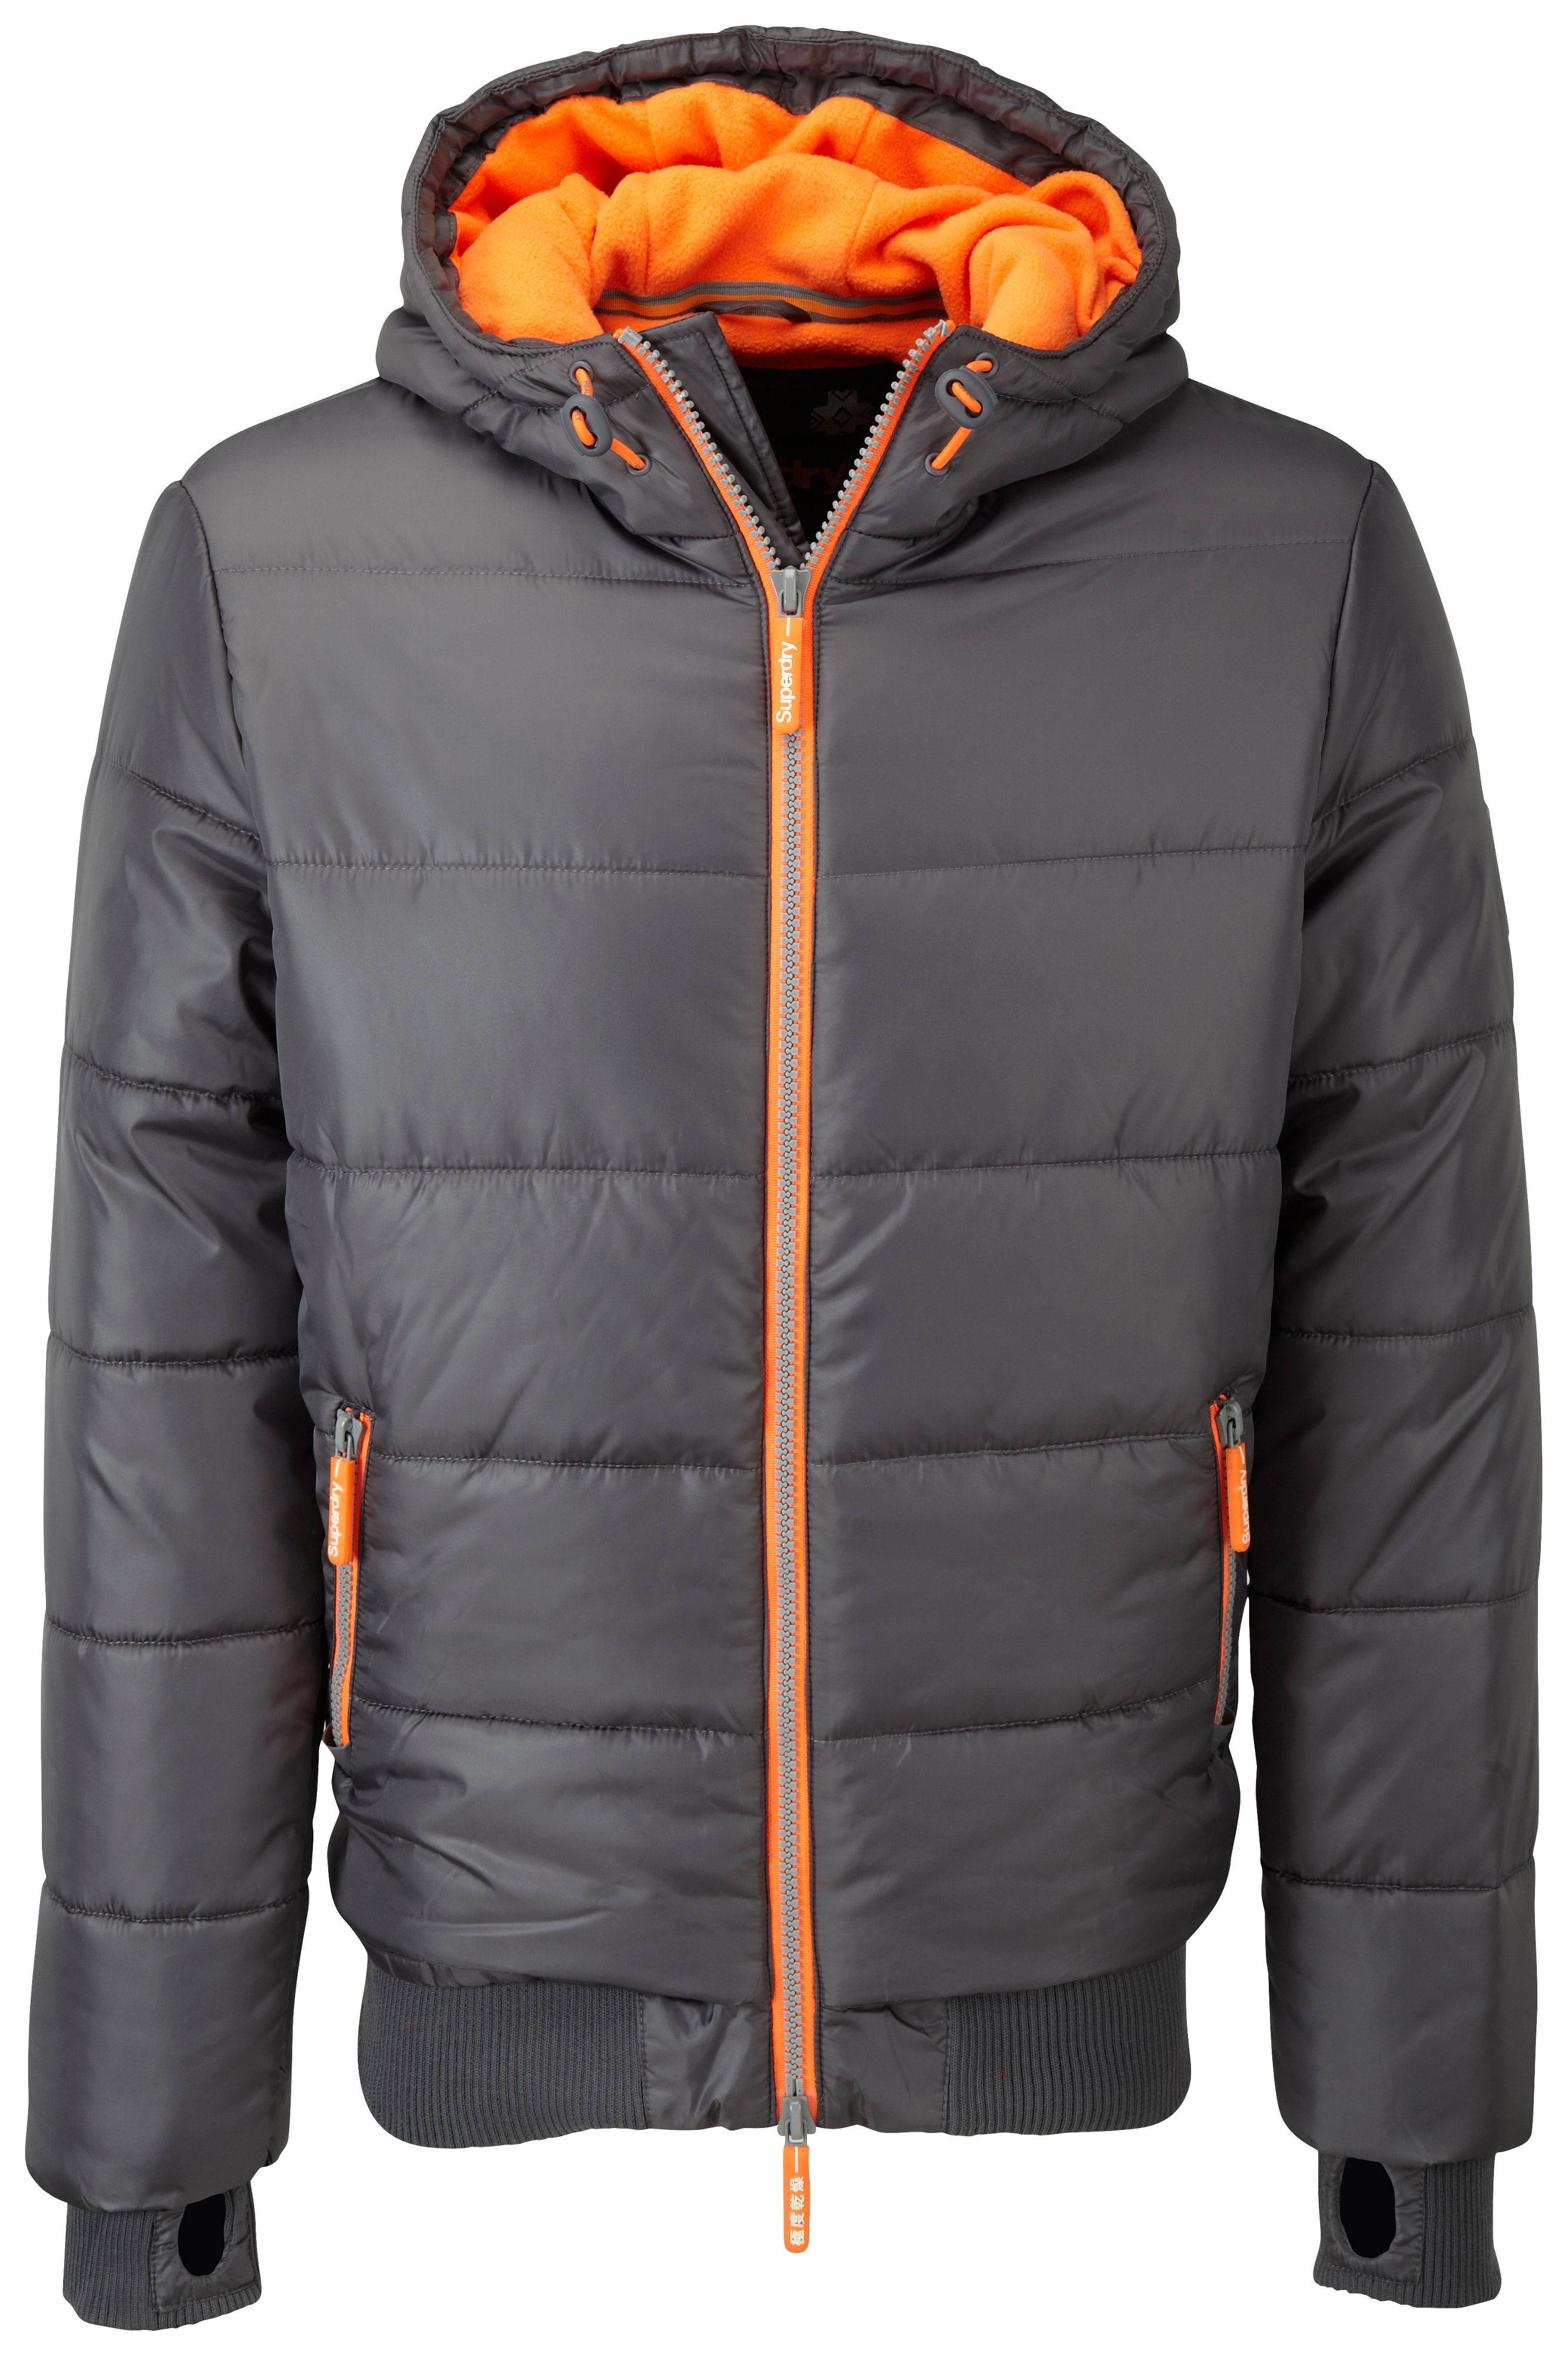 Polar quilted jacket